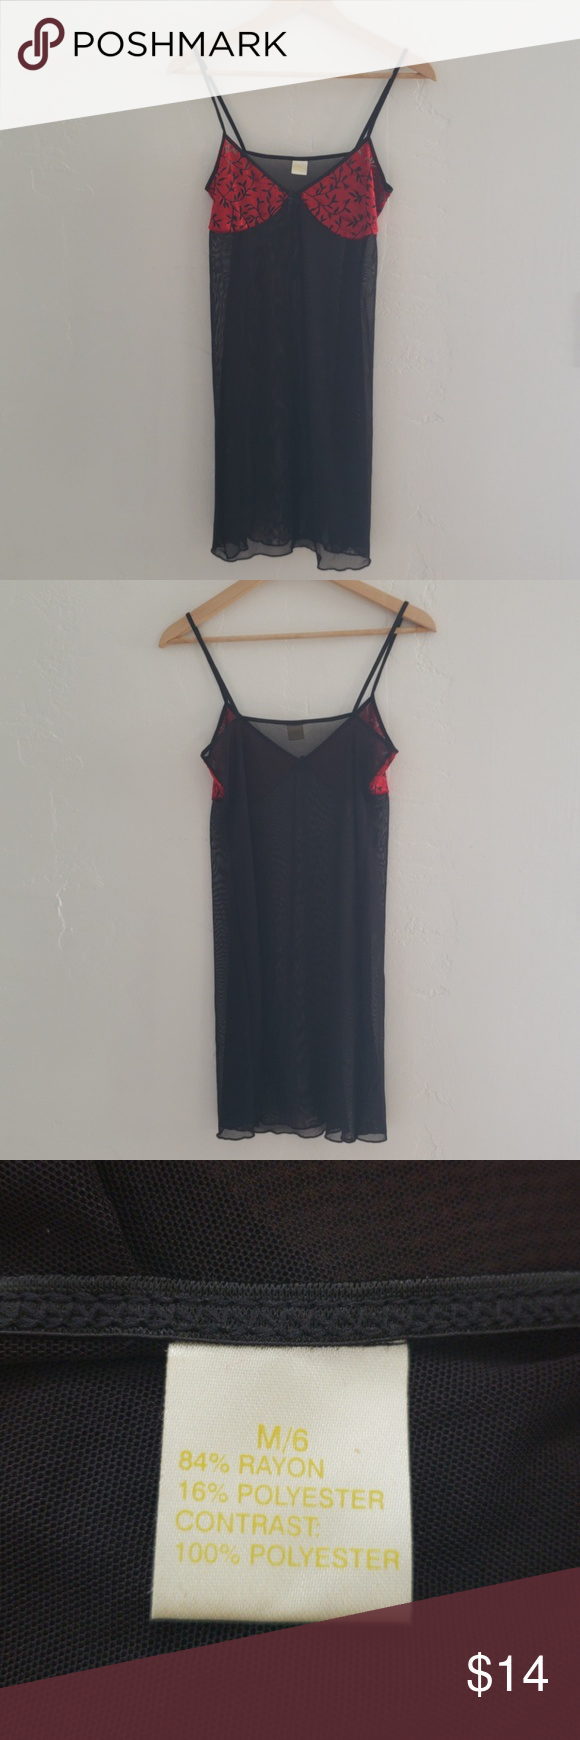 de10da77113 Unbranded women sexy sleeping dress Pre-owned but in great condition unbranded  Intimates   Sleepwear